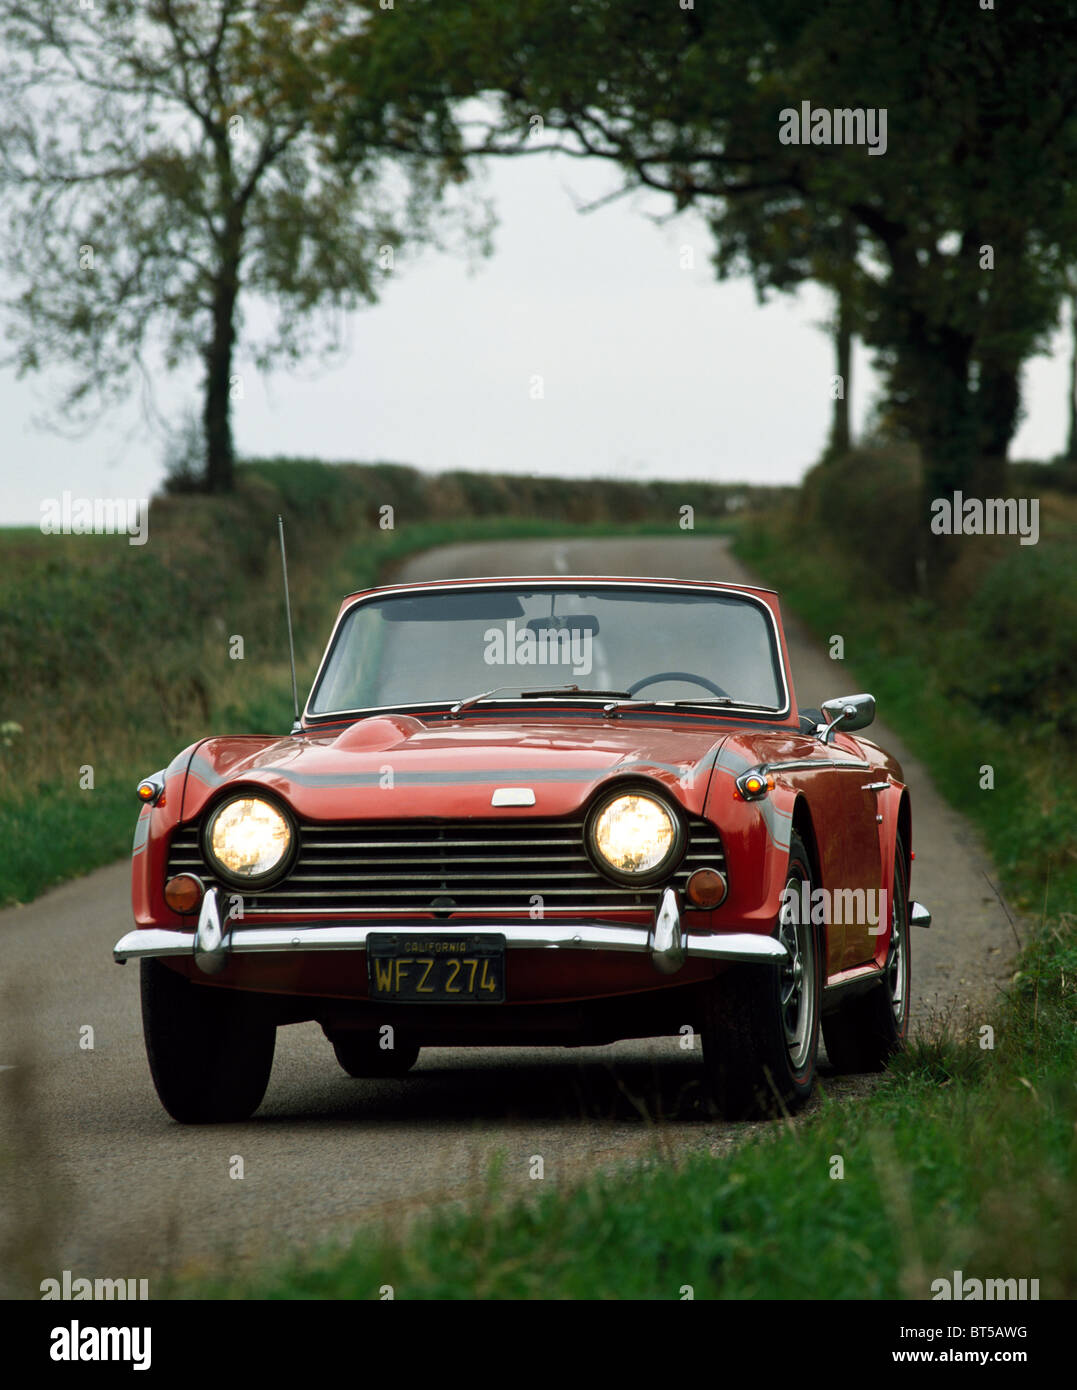 Triumph TR 250 from 1967-8, left hand drive, originally registered in the USA - Stock Image